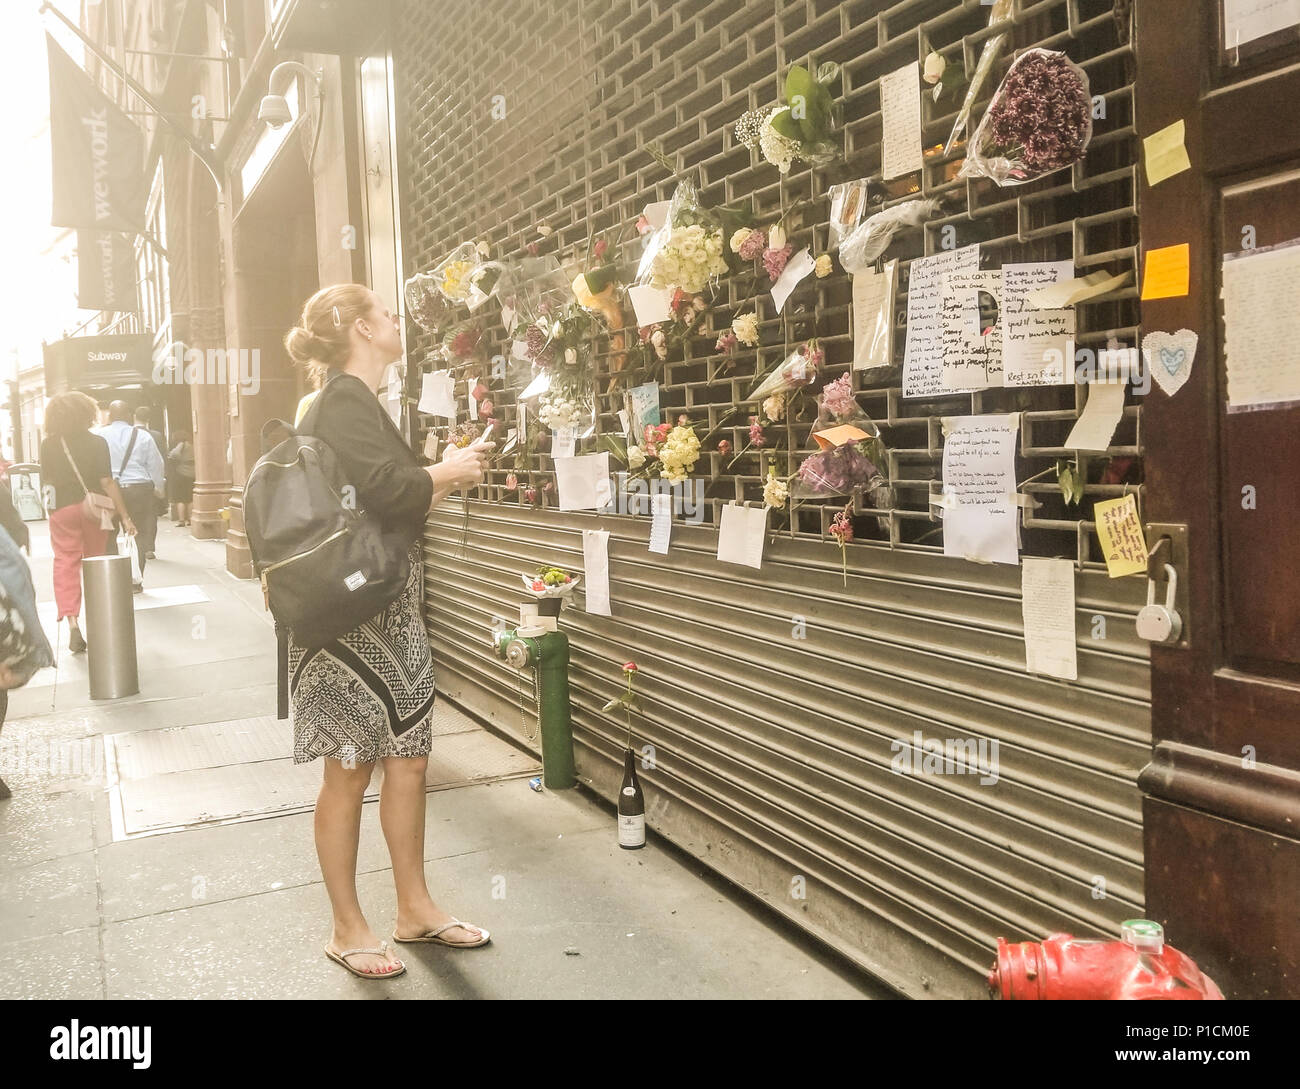 New York, USA, 11th June 2018. A woman observes handwritten notes and flowers left, memorializing Anthony Bourdain after his shocking suicide on June 8, 2018. Passersby and fans left items at the downtown location of the Les Halles restaurant, most well-known for being one of the first restaurants to give celebrity chef, author, and television host a start to his cooking career (he worked at the midtown location). Credit: Brigette Supernova/Alamy Live News - Stock Image